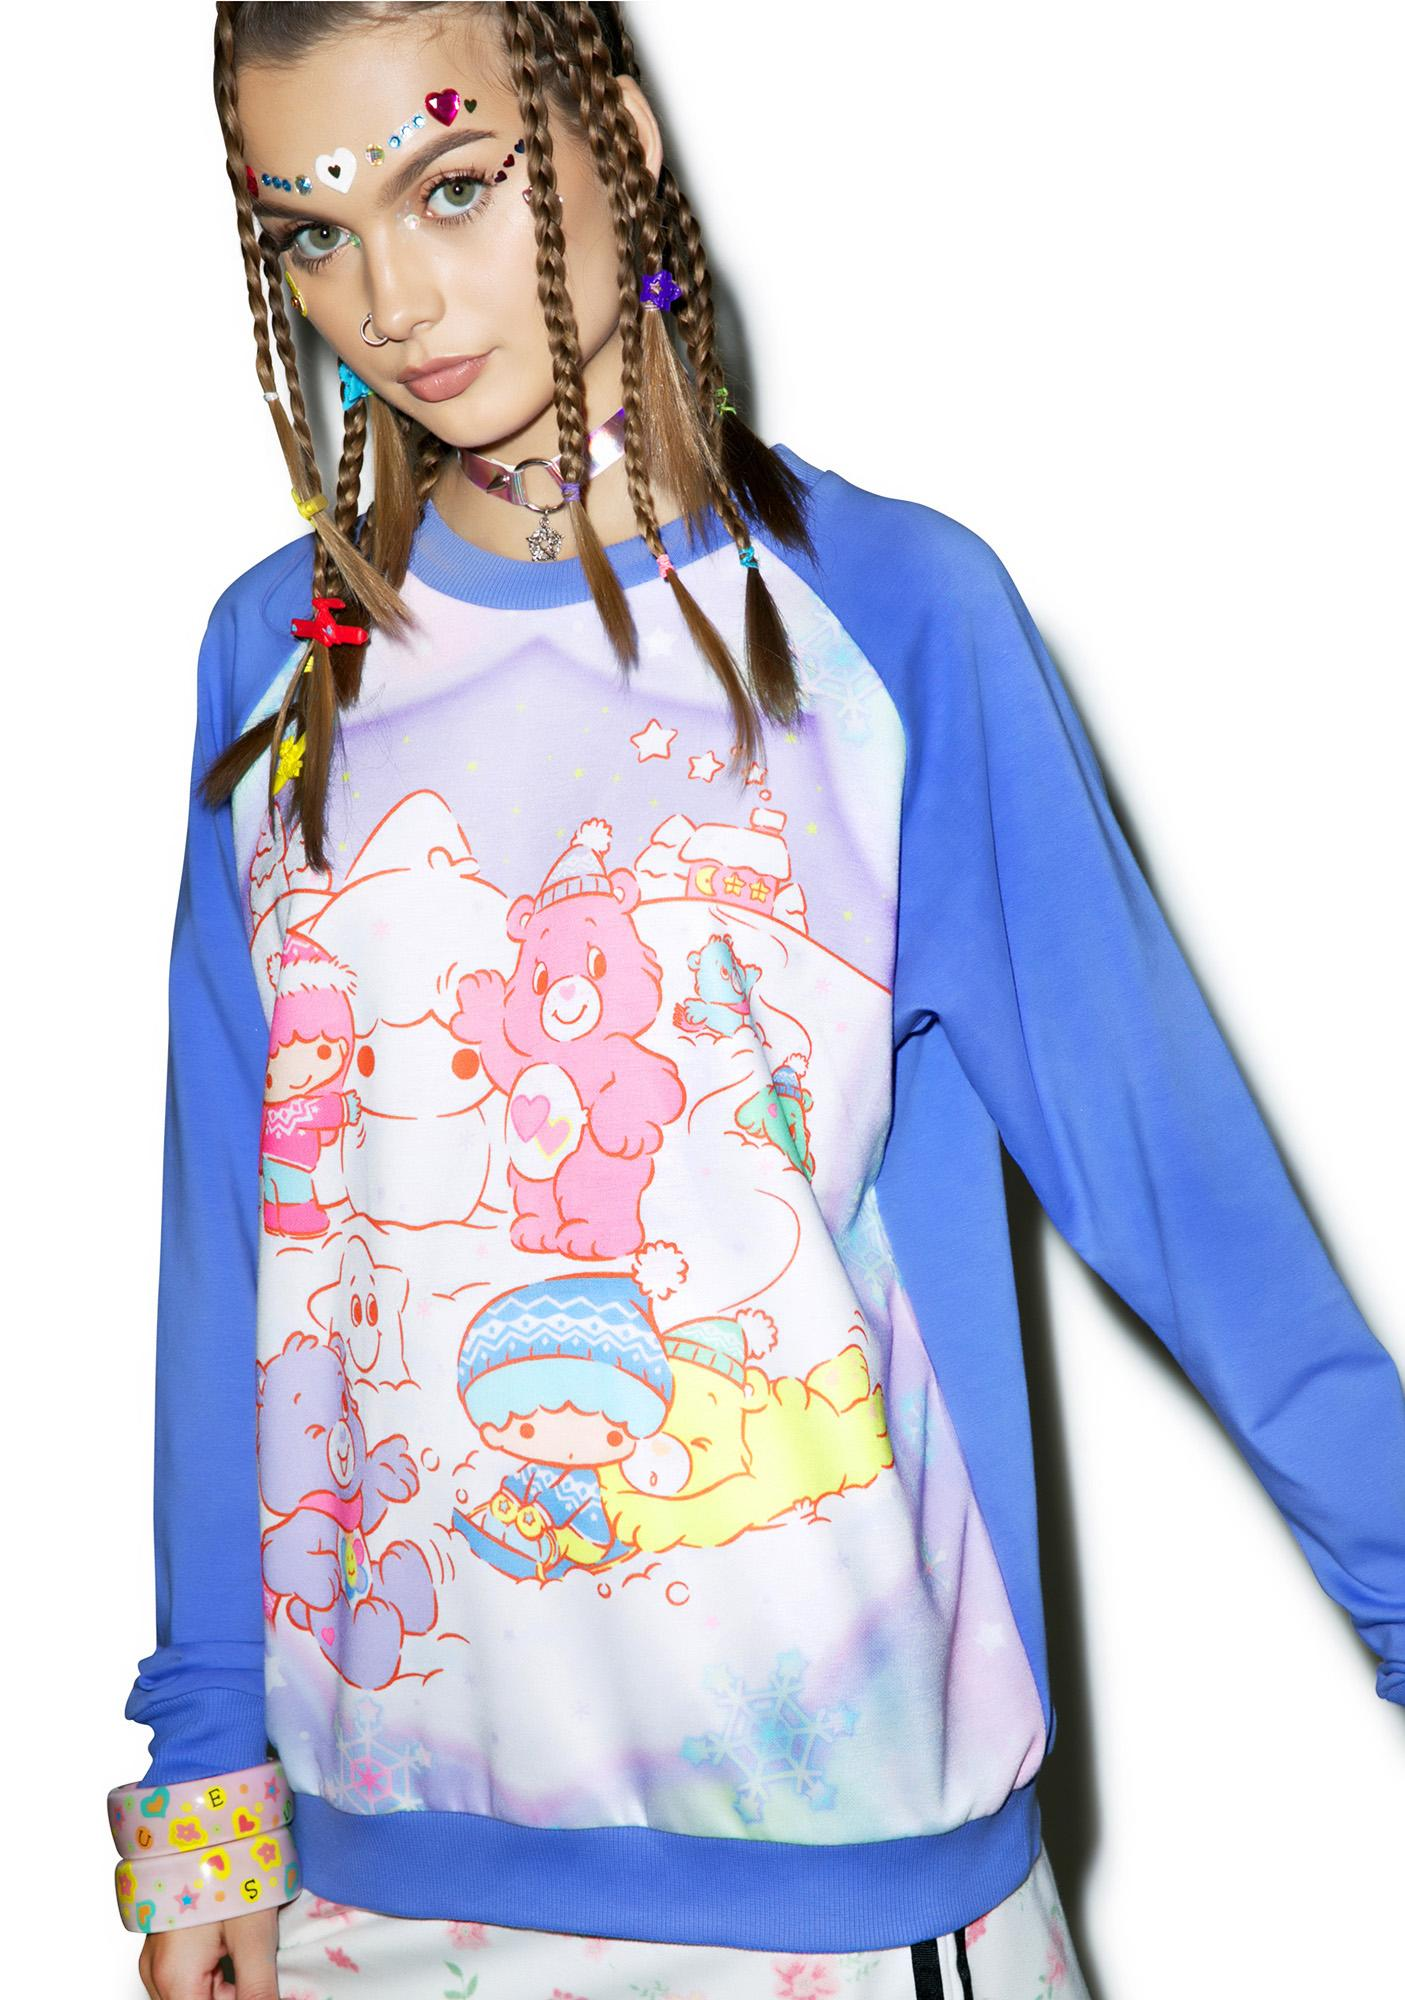 Japan L.A. Little Stars X Care Bears Winter Sweatshirt